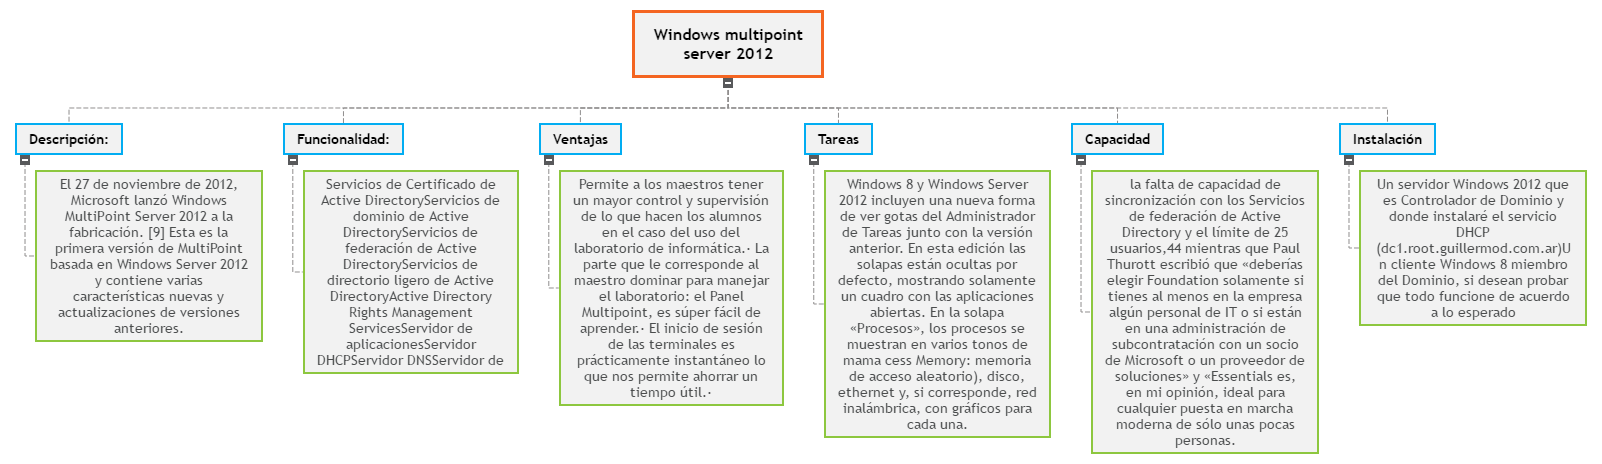 Windows multipoint server 2012 WBS